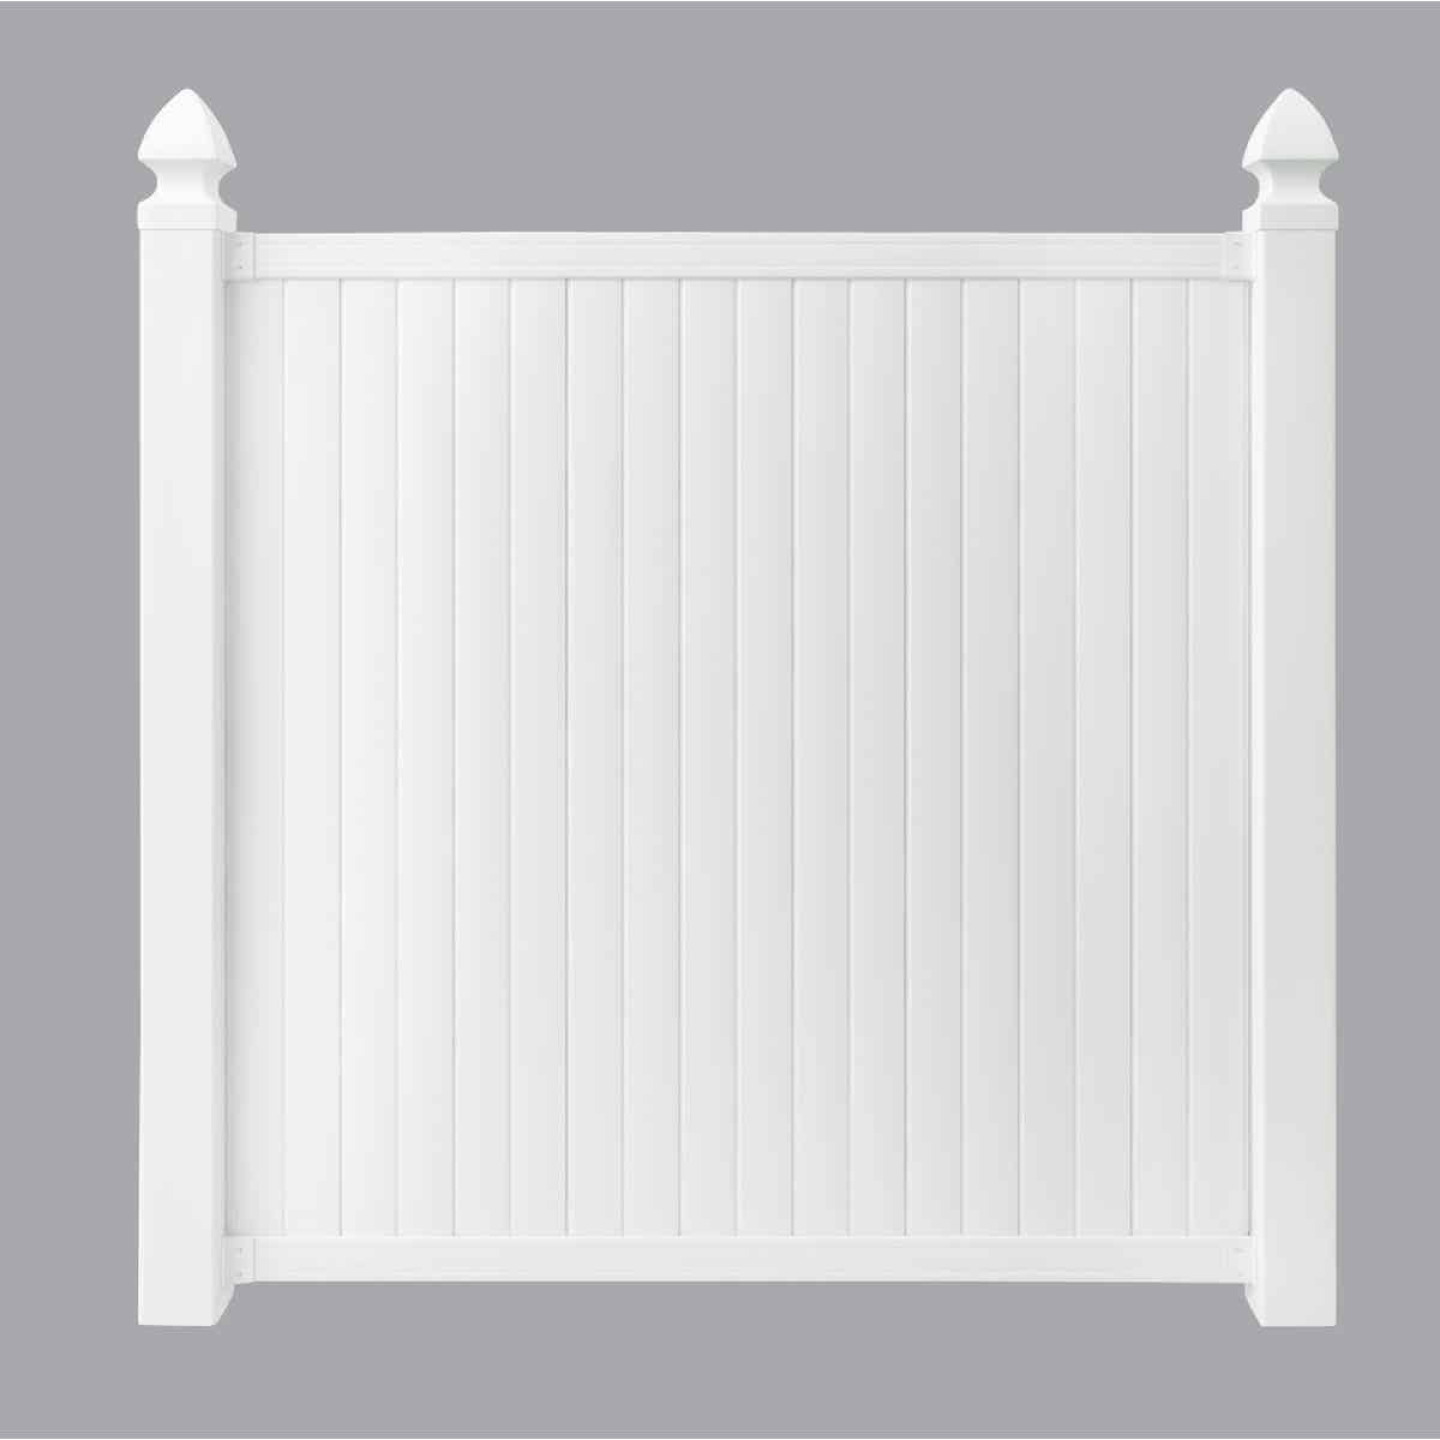 Outdoor Essentials 6 Ft. H. x 6 Ft. L. Standard White Vinyl Privacy Fence Image 1